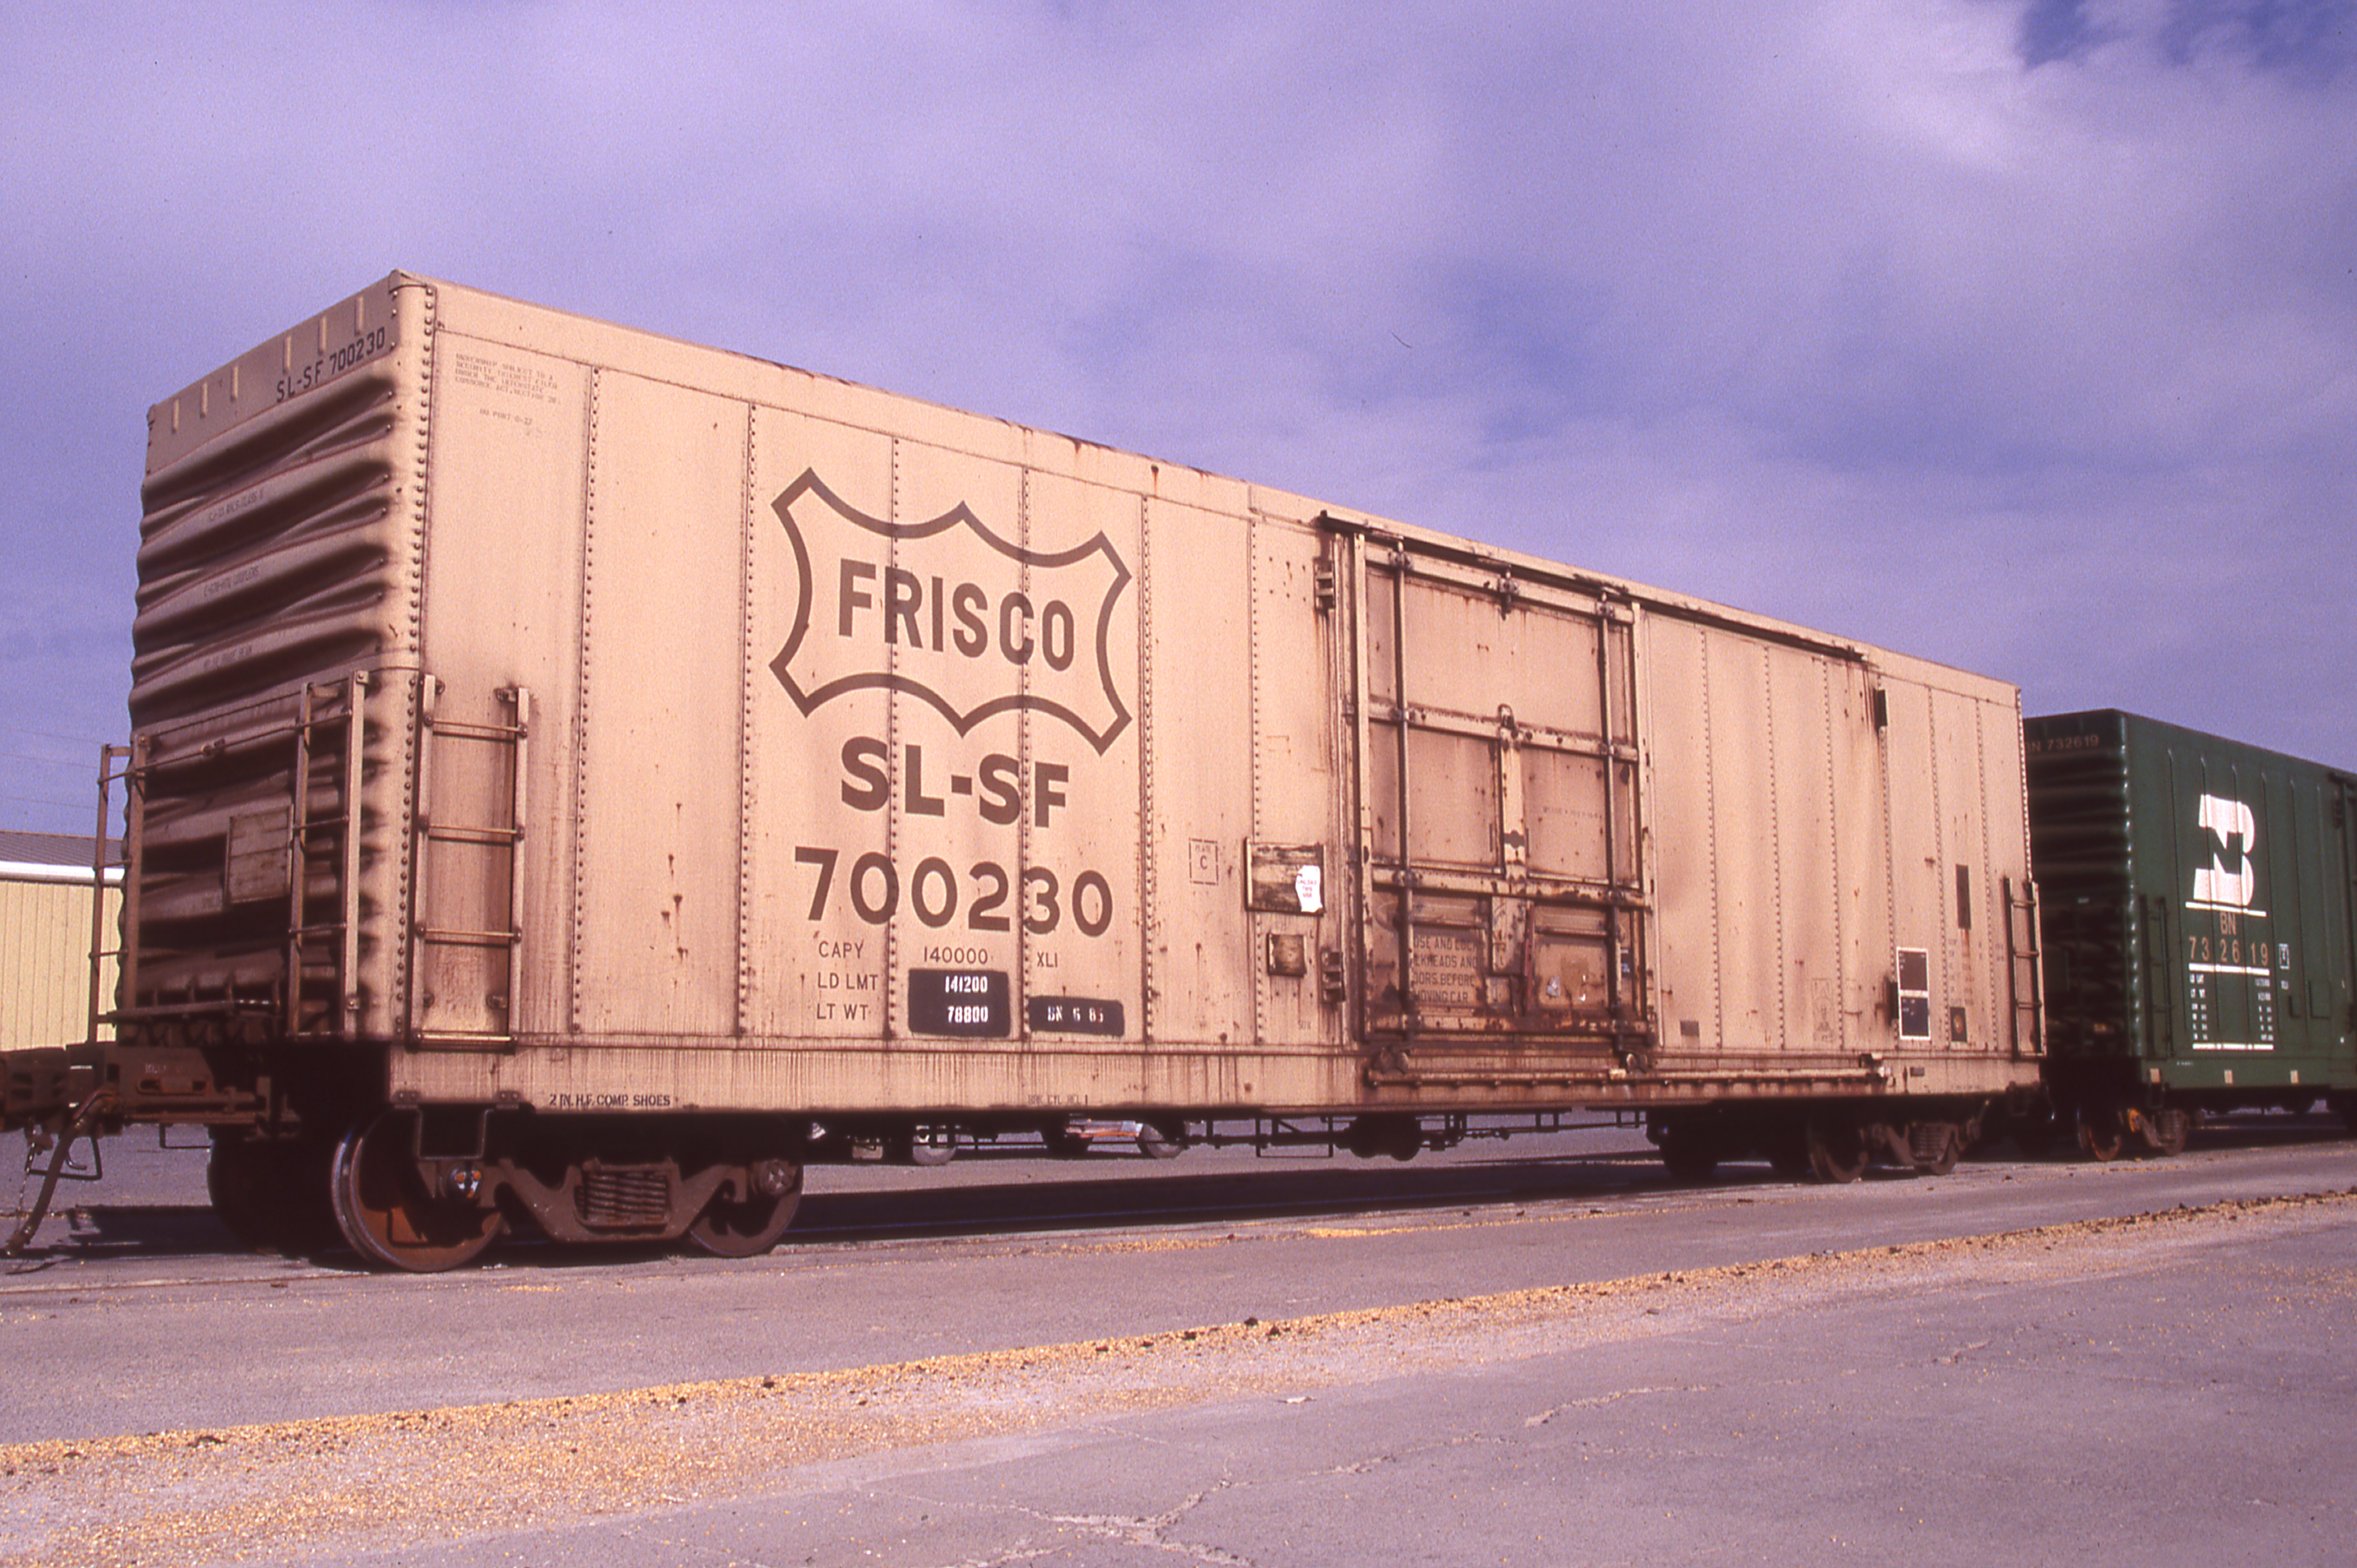 Boxcar 700230 at Pasco, Washington on July 20, 1997 (R.R. Taylor)